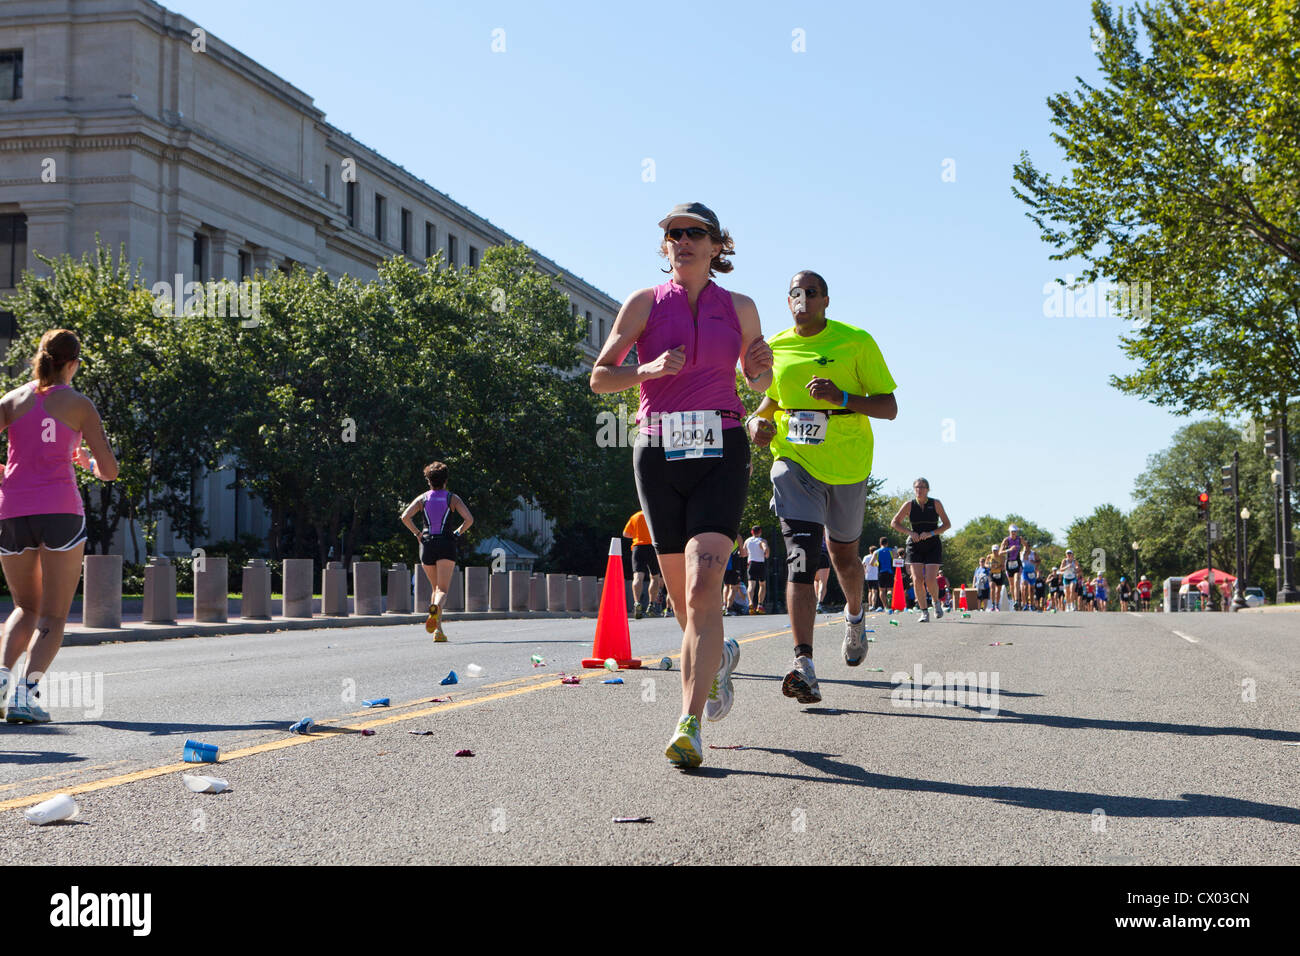 People running in a marathon - Stock Image